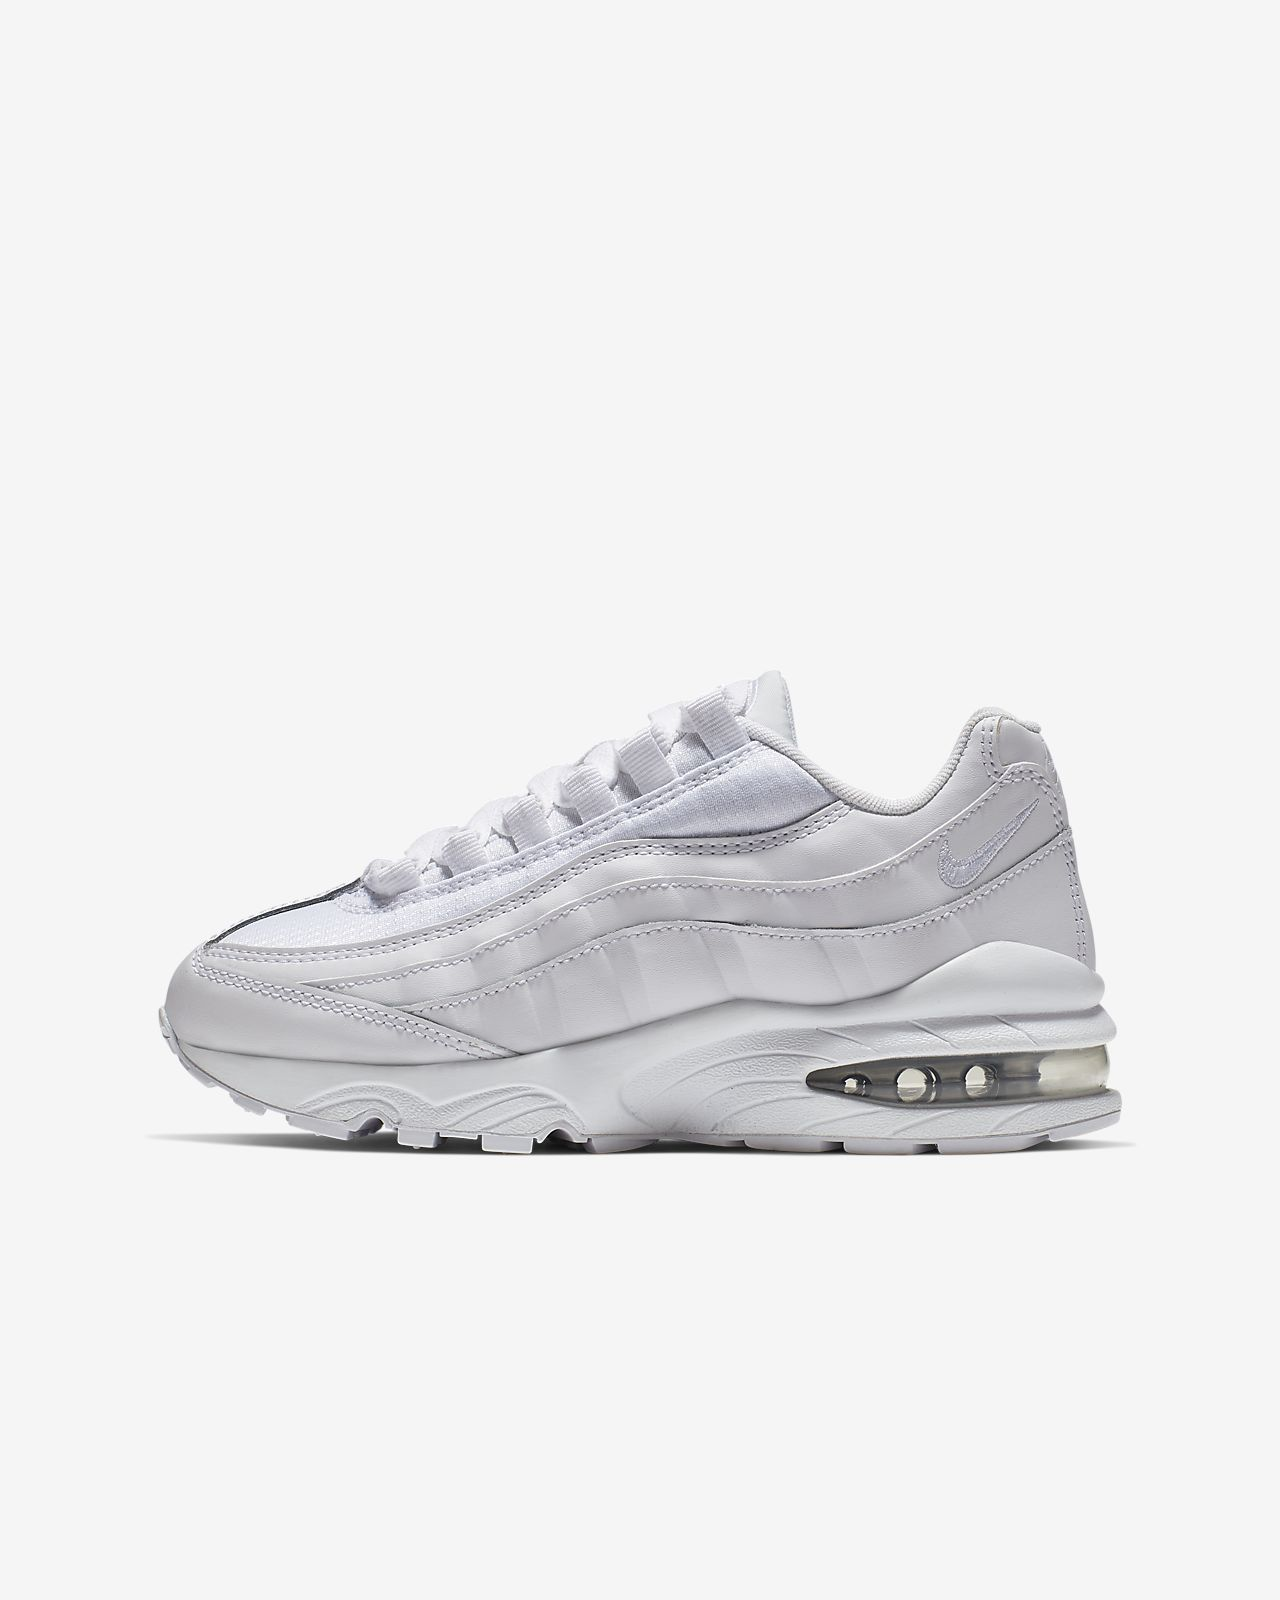 Air Max 95 Big Kids' Shoe | Products | Nike air max, Air max